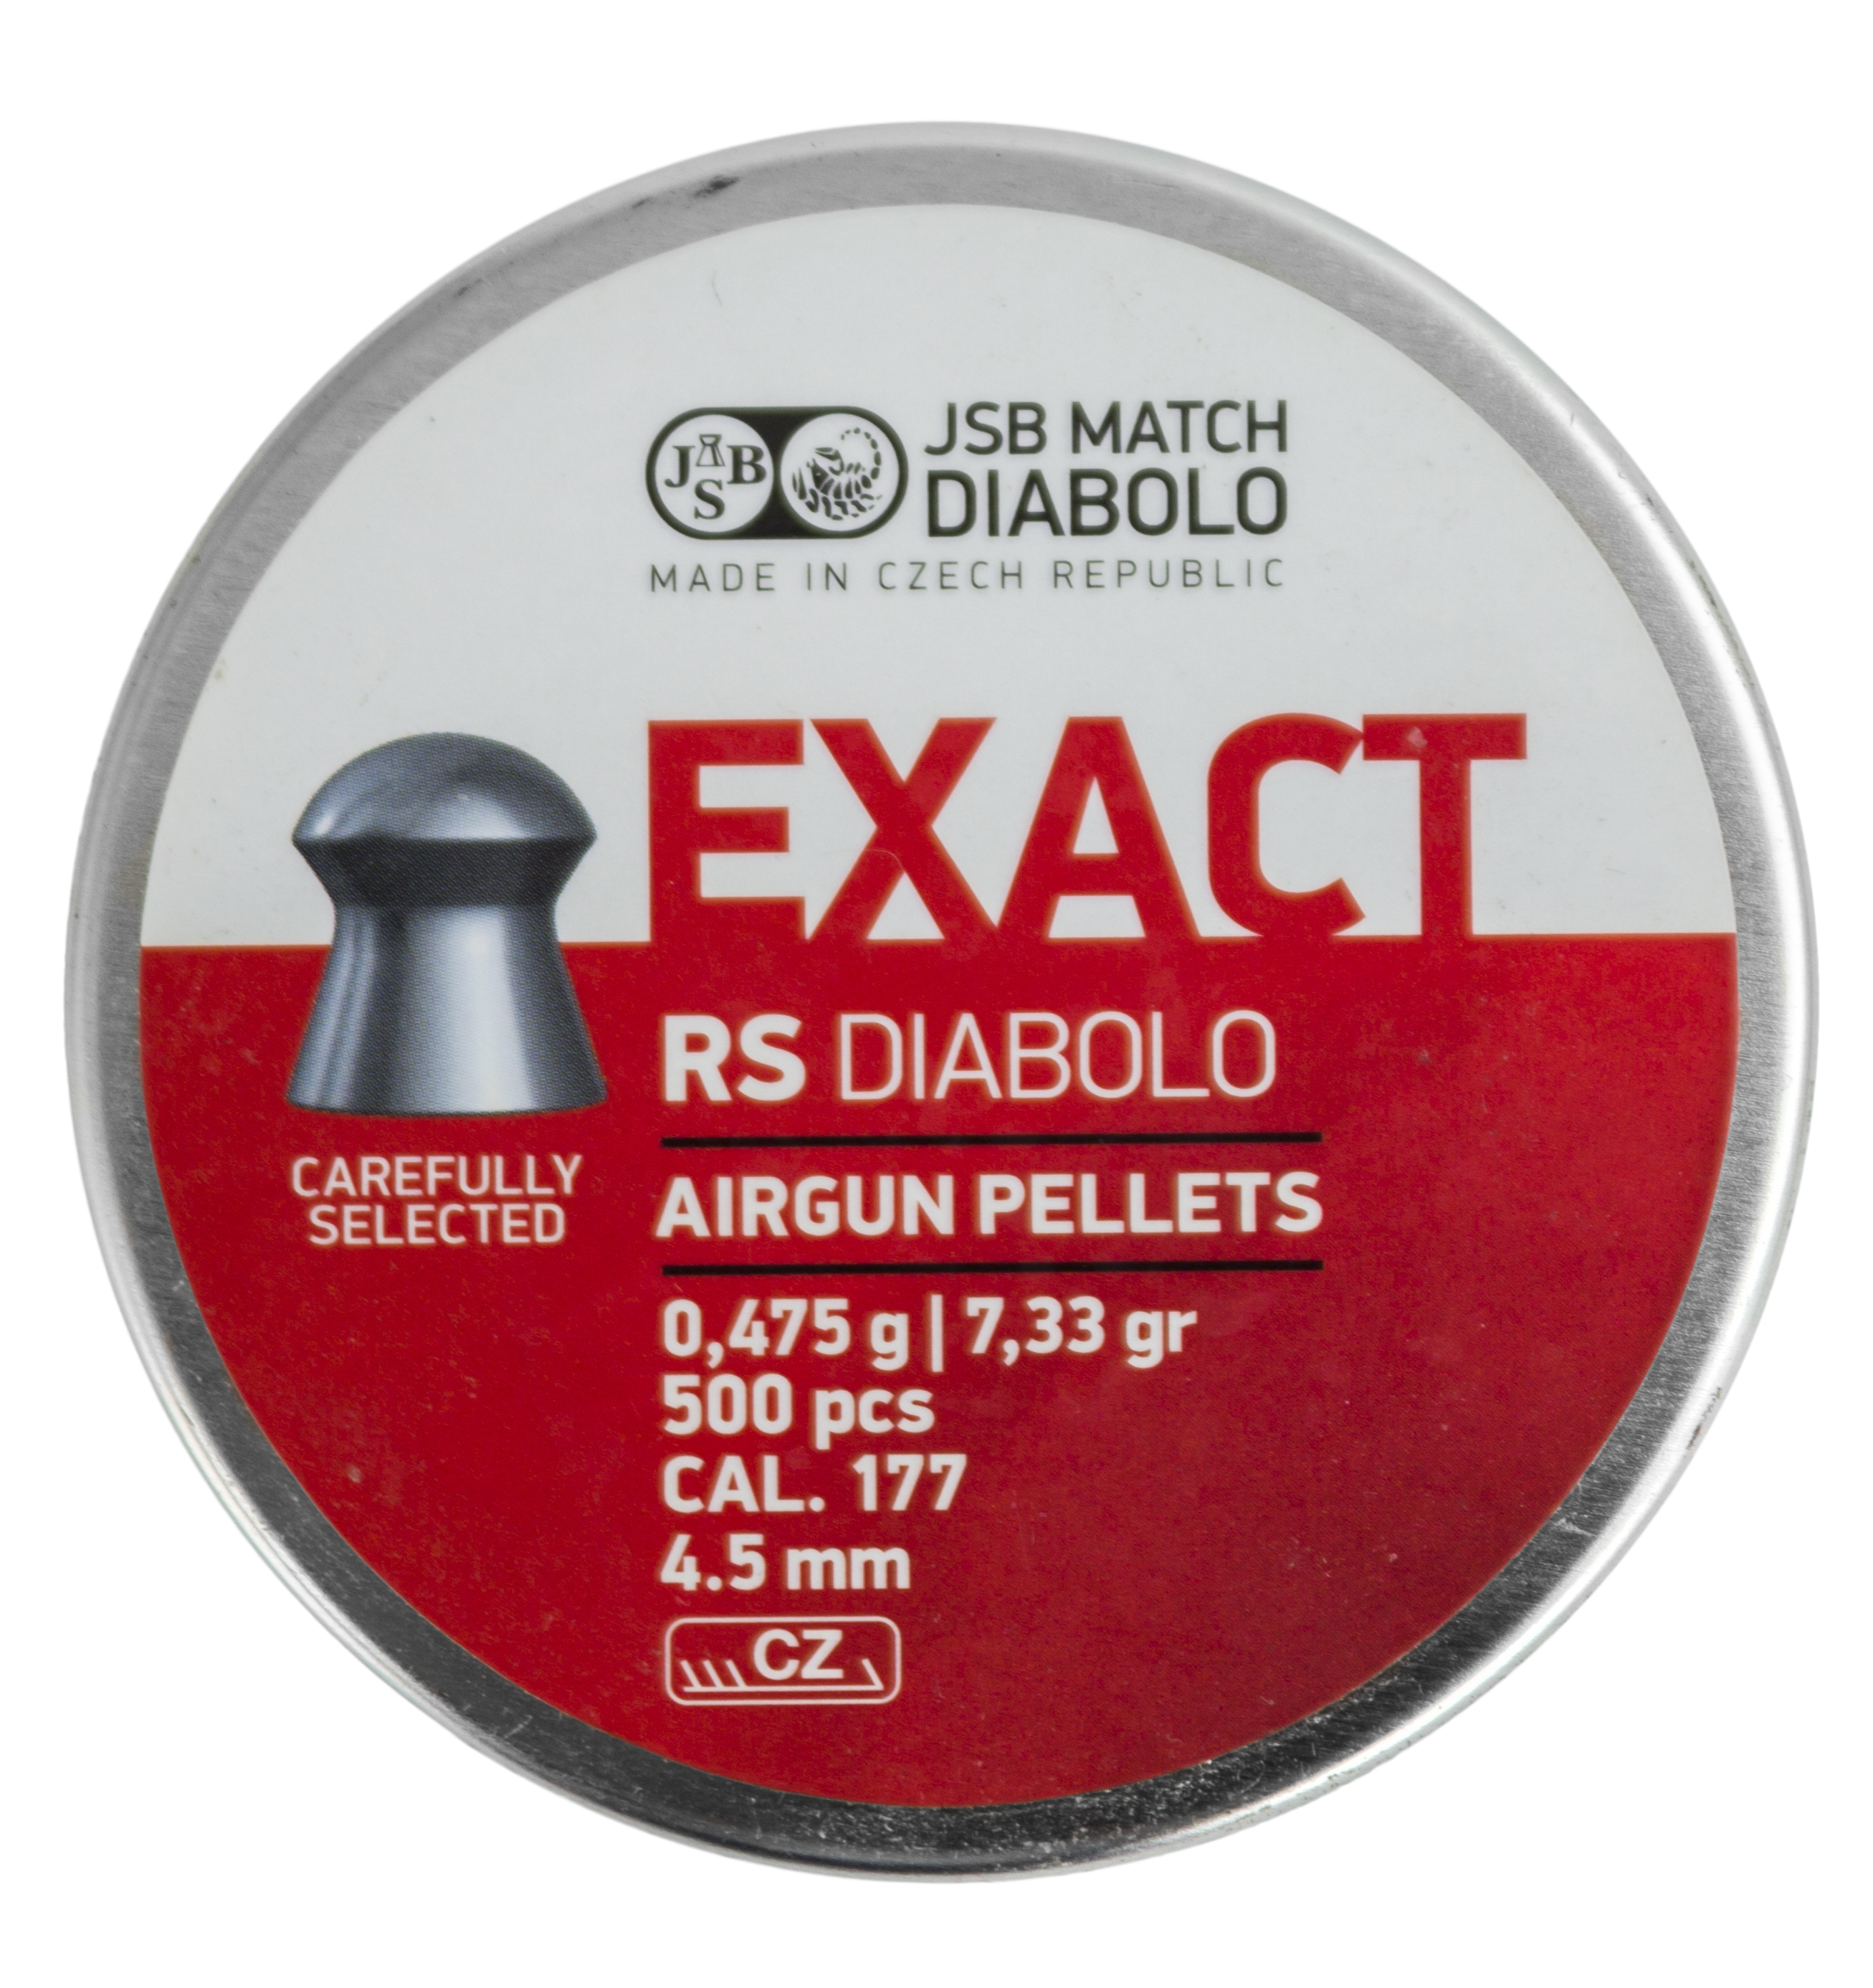 JSB EXACT RS DIABOLO 4.5 mm